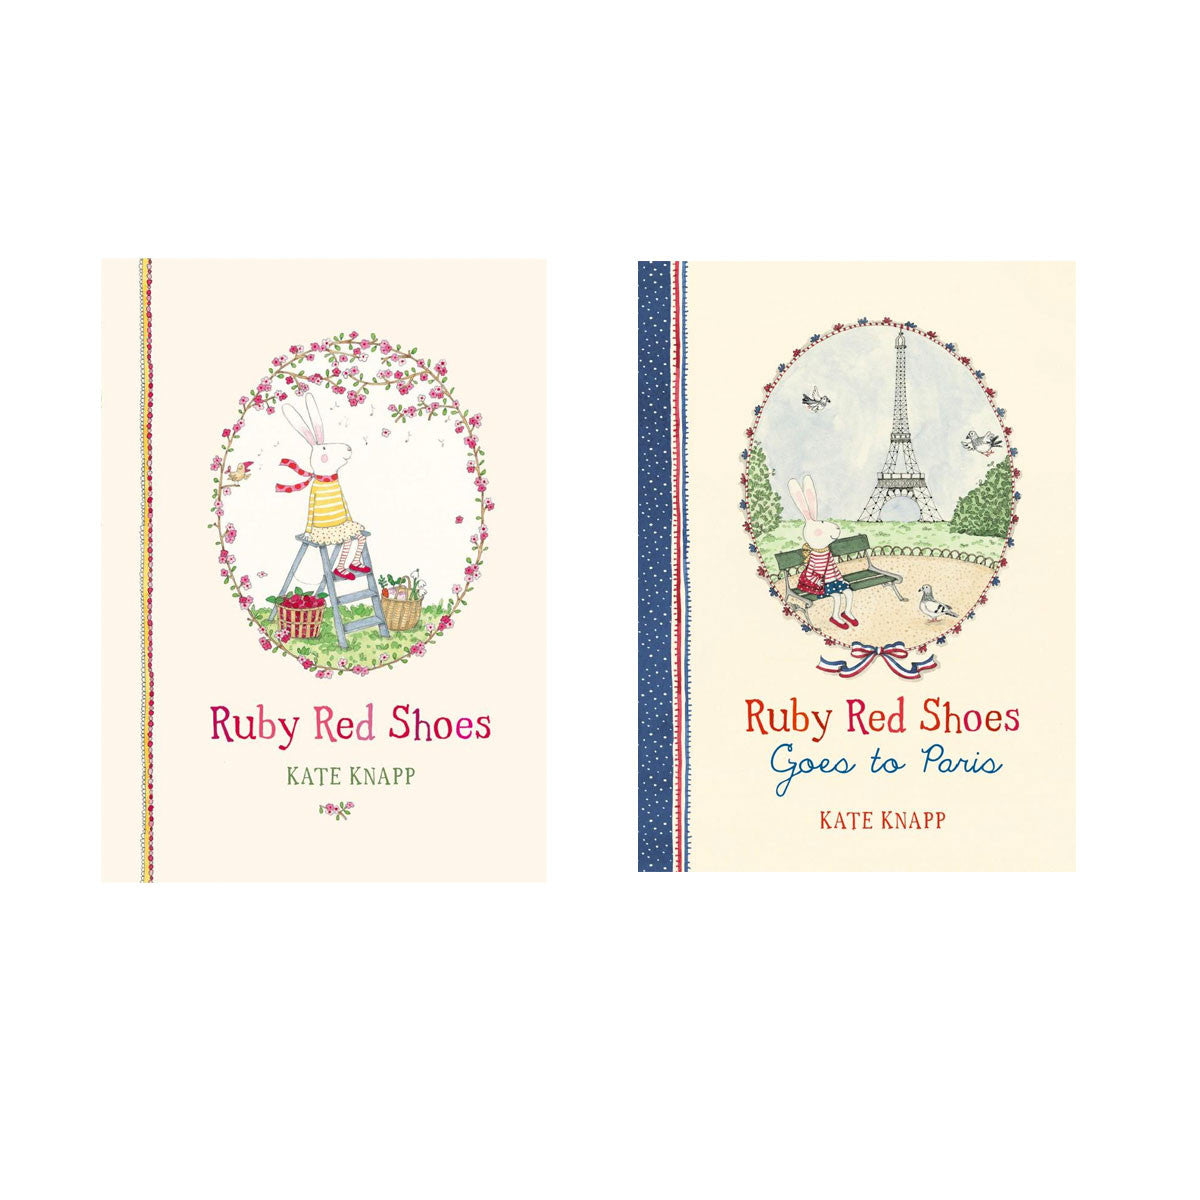 Ruby Red Shoes My Storybook Suitcase Little Earth Nest Books at Little Earth Nest Eco Shop